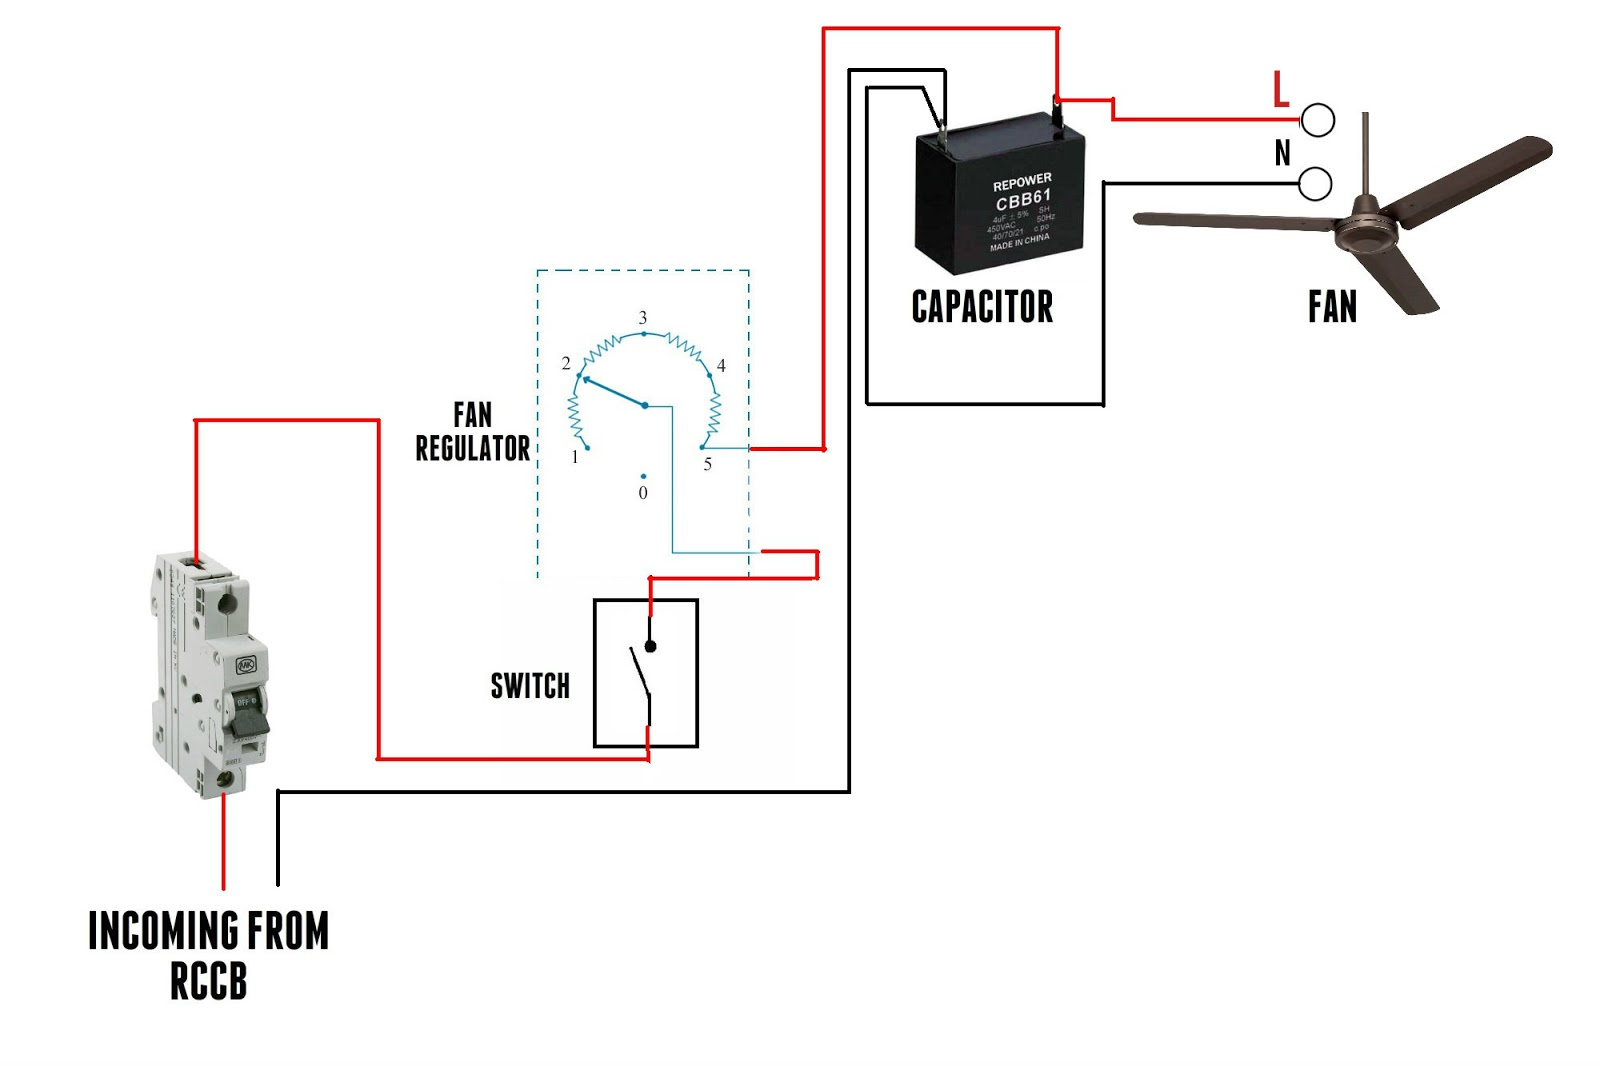 medium resolution of there s a capacitor for the fan because it will stabilize voltage and the power factor after connect to the capacitor it connect to the regulator to change